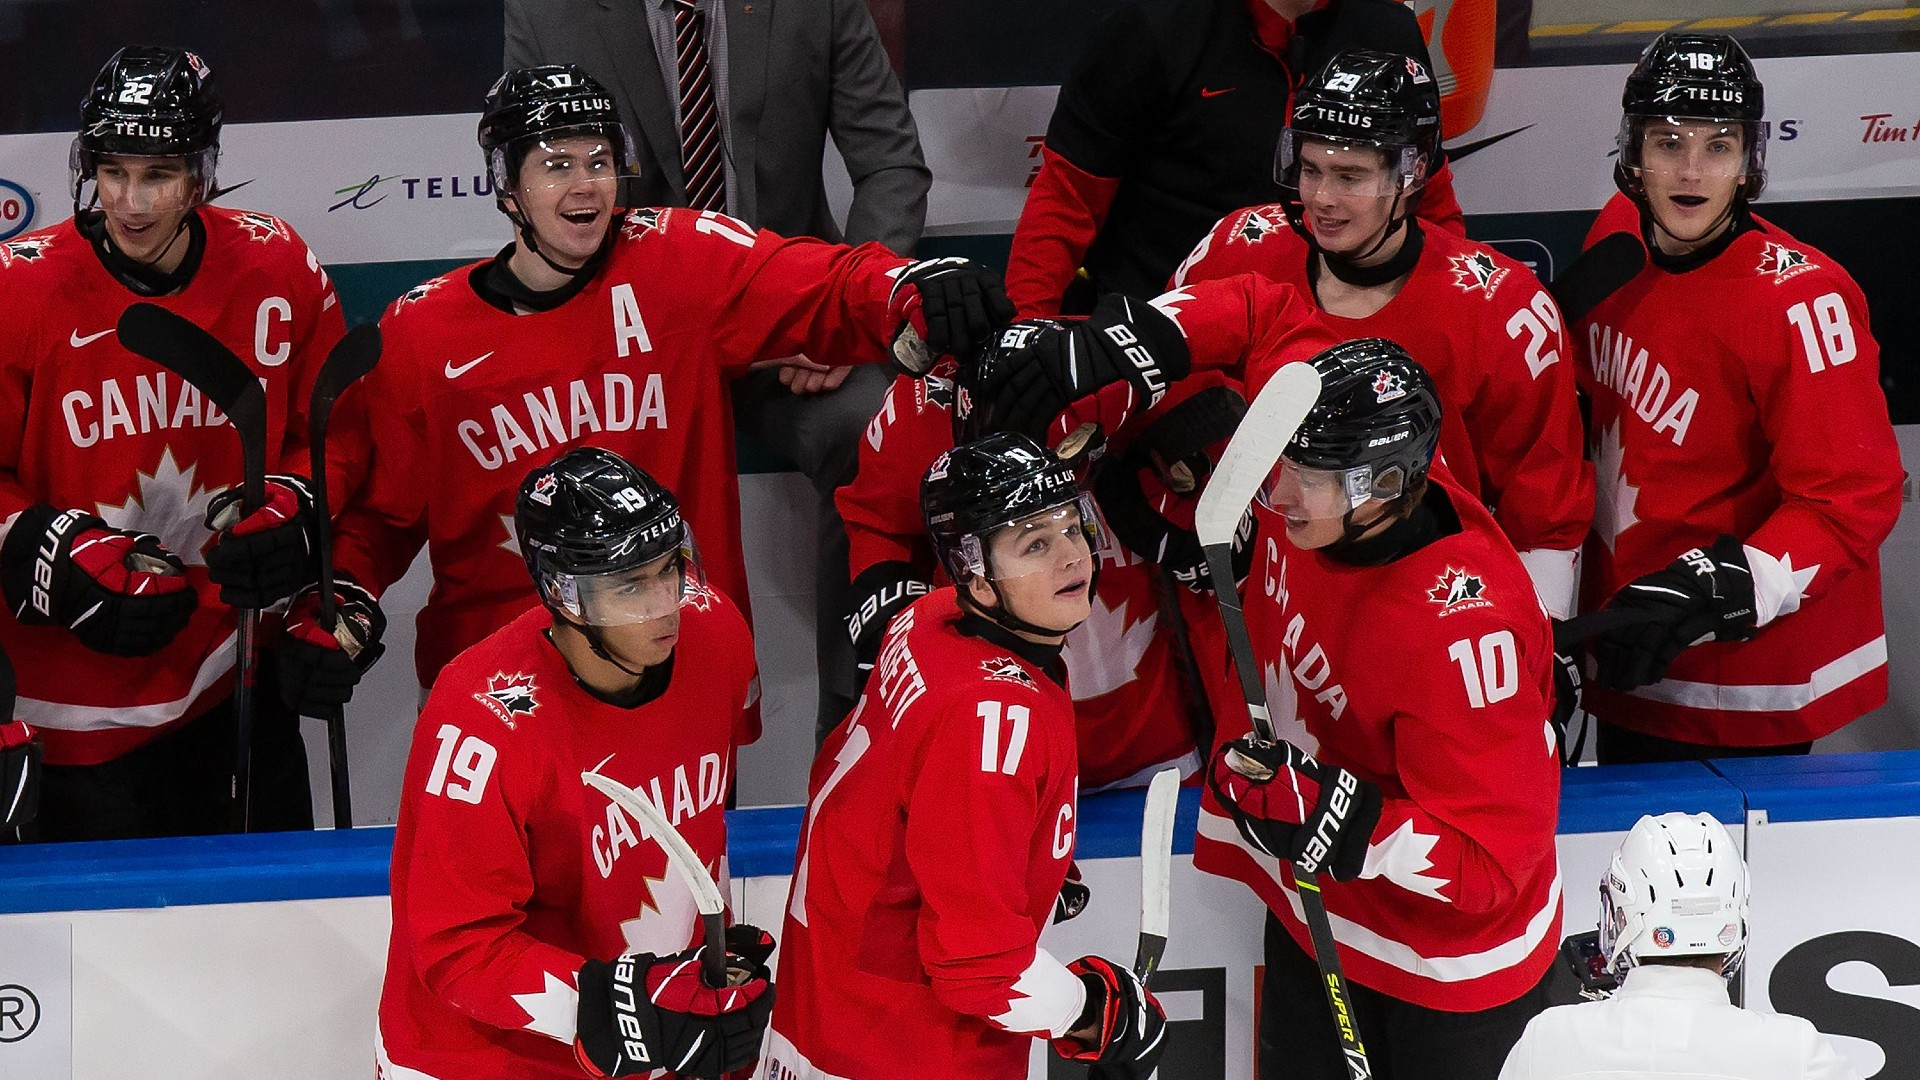 https://images.daznservices.com/di/library/Sporting_News_CA_CMS_image_storage/6e/63/canada-wjc-010421-getty-ftrjpeg_e5cvdugeizo11ptliwy665i91.jpg?t=-800453658&quality=100